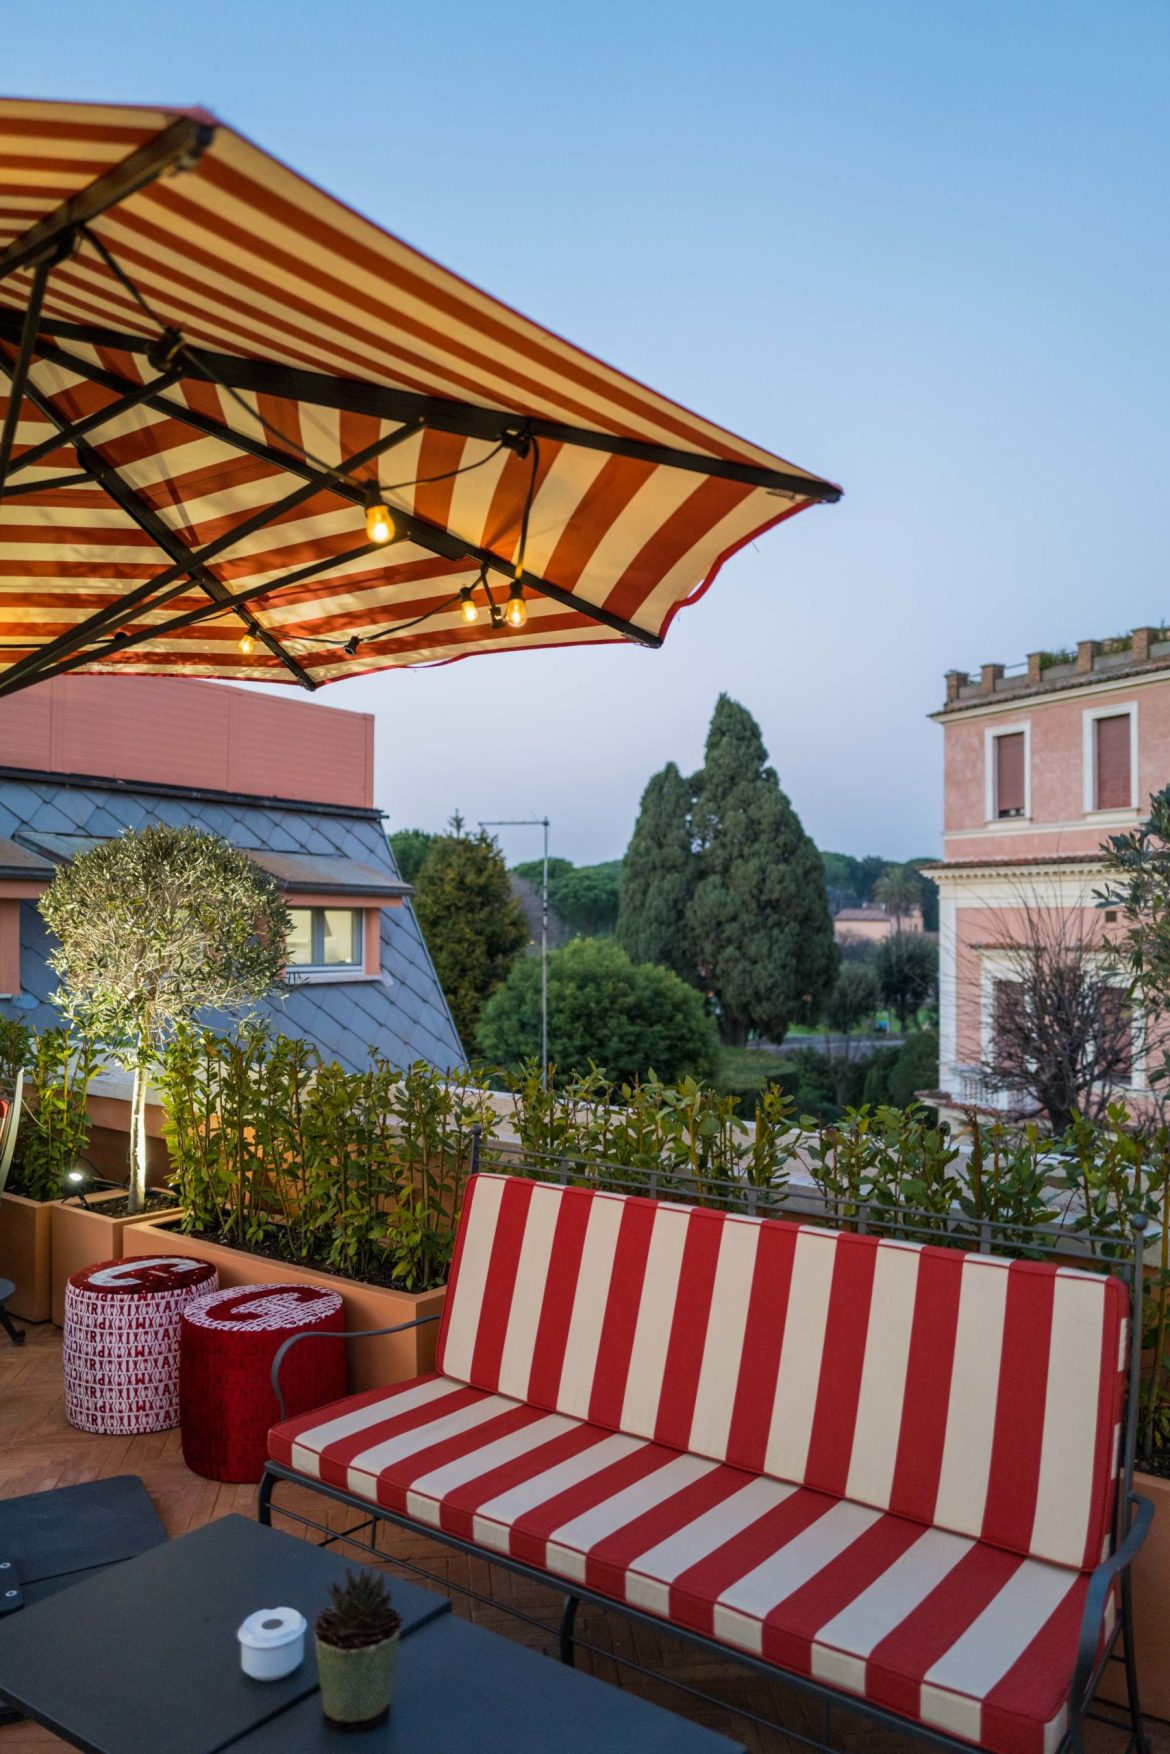 Enjoy the afternoon on Cielo Terrace rooftop at Rocco Forte's Hotel de la Ville Rome - The Taste Edit #rome #hotel #decor #travel